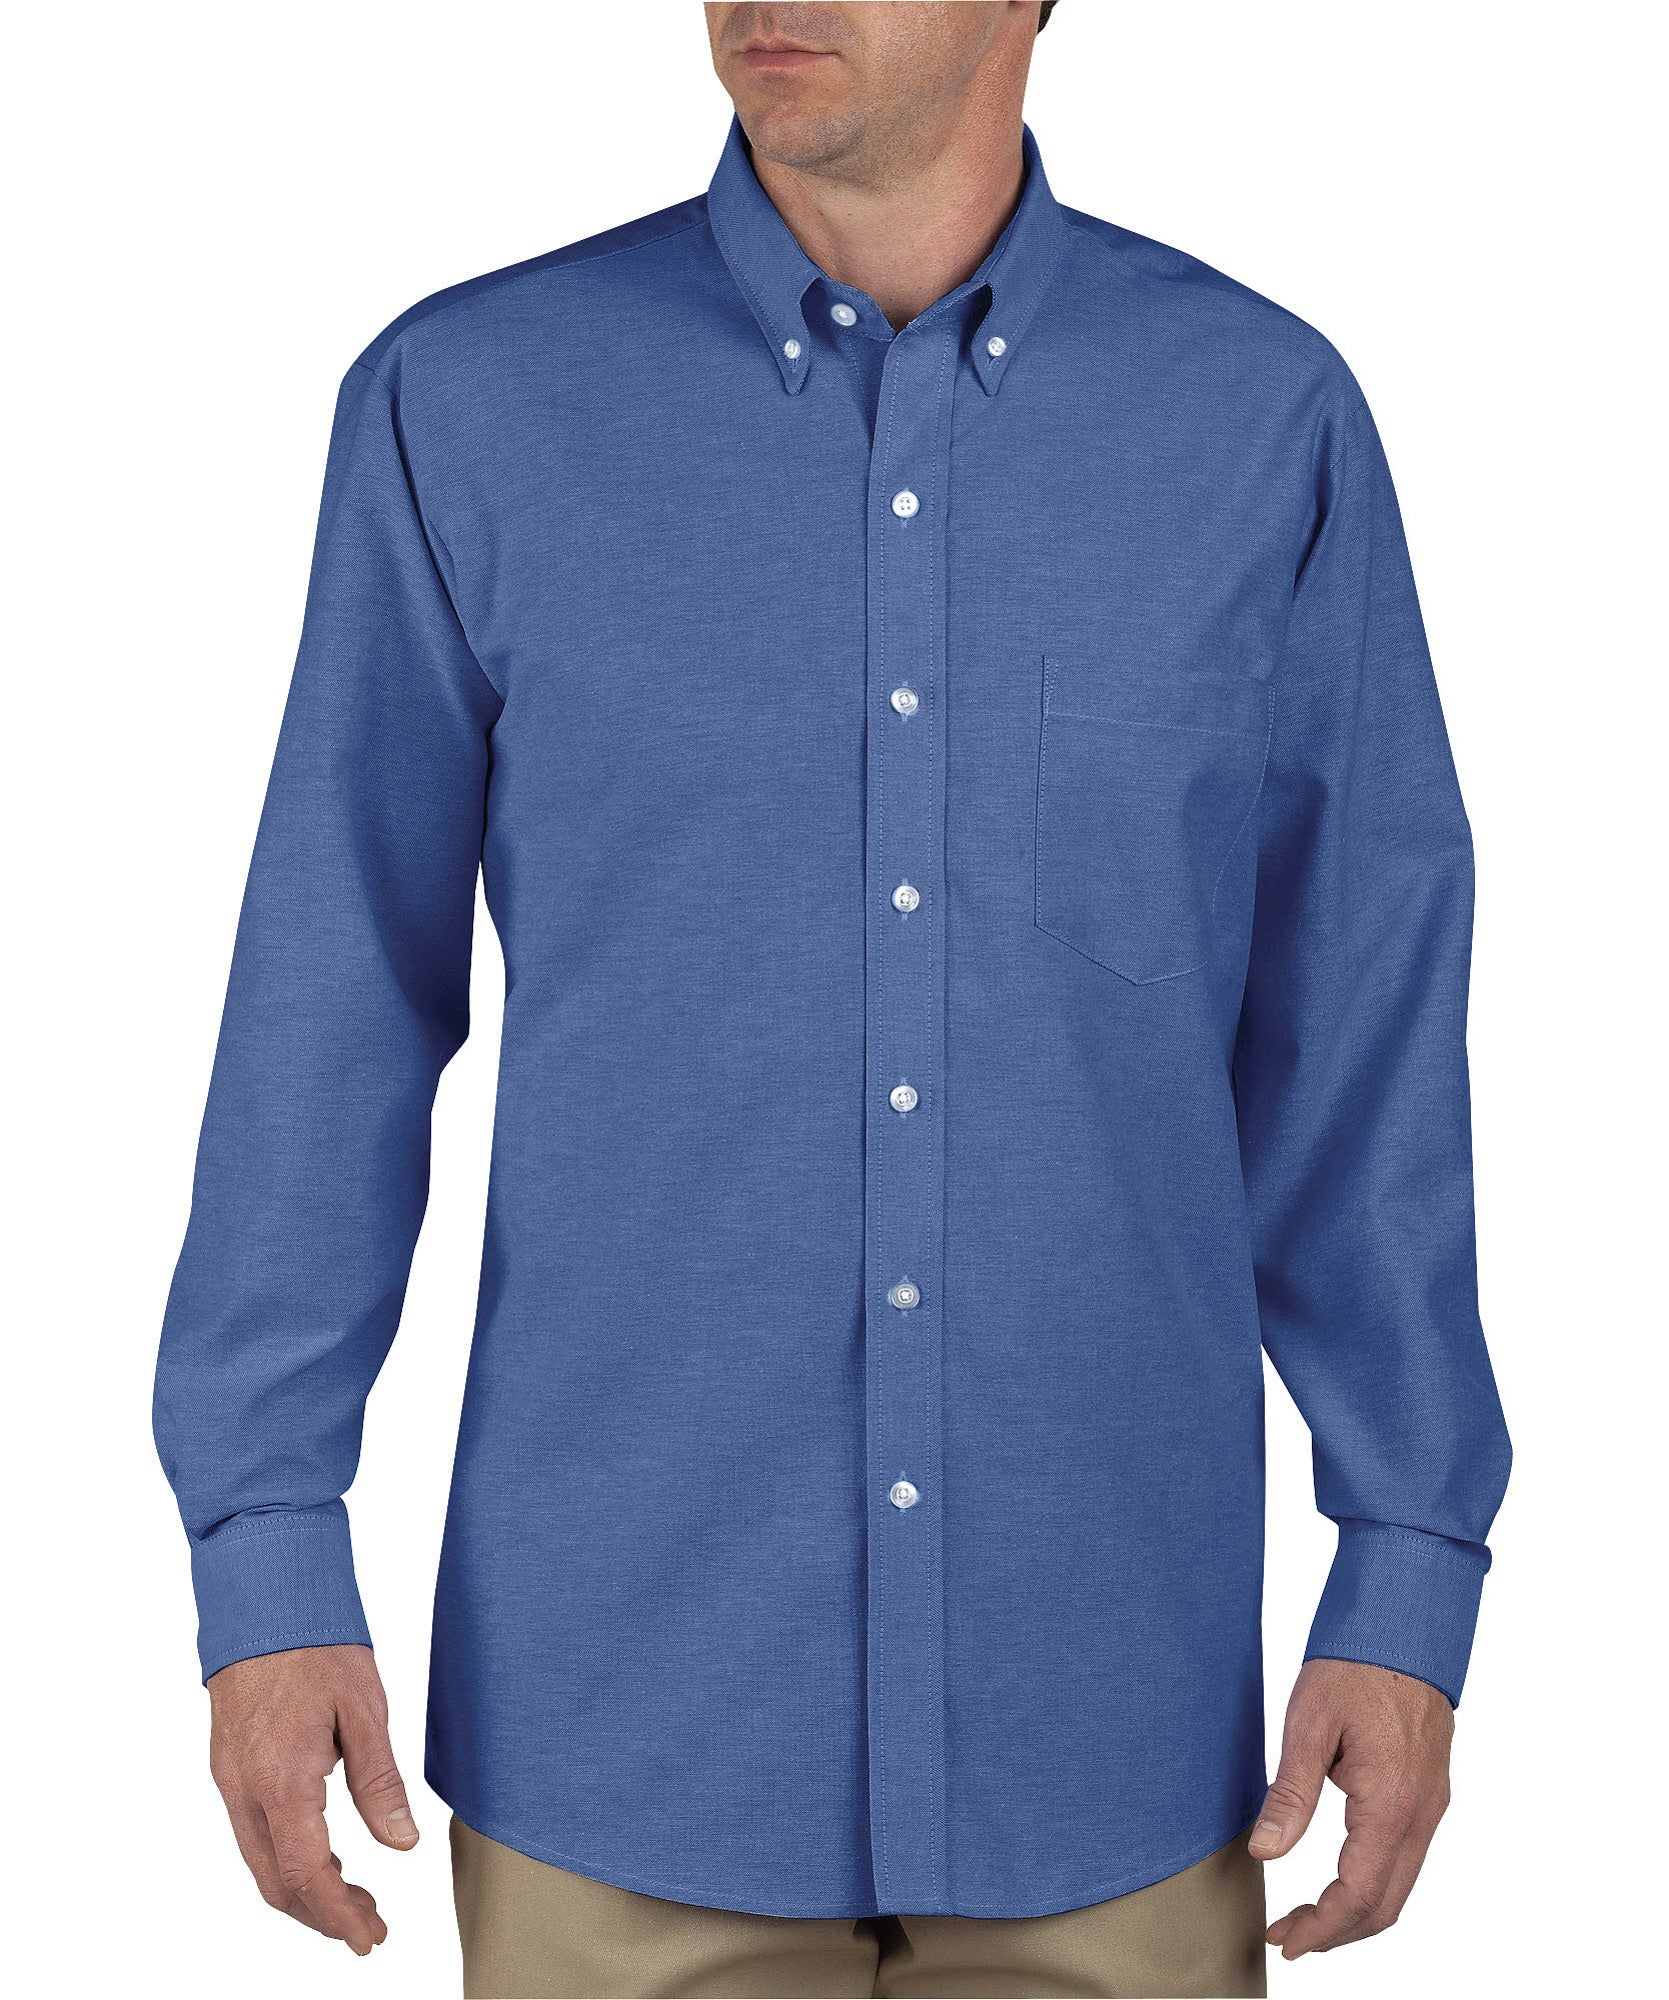 131abc62 Dickies Mens French Blue L/S Button-Down Long Sleeve Oxford Shirt ...